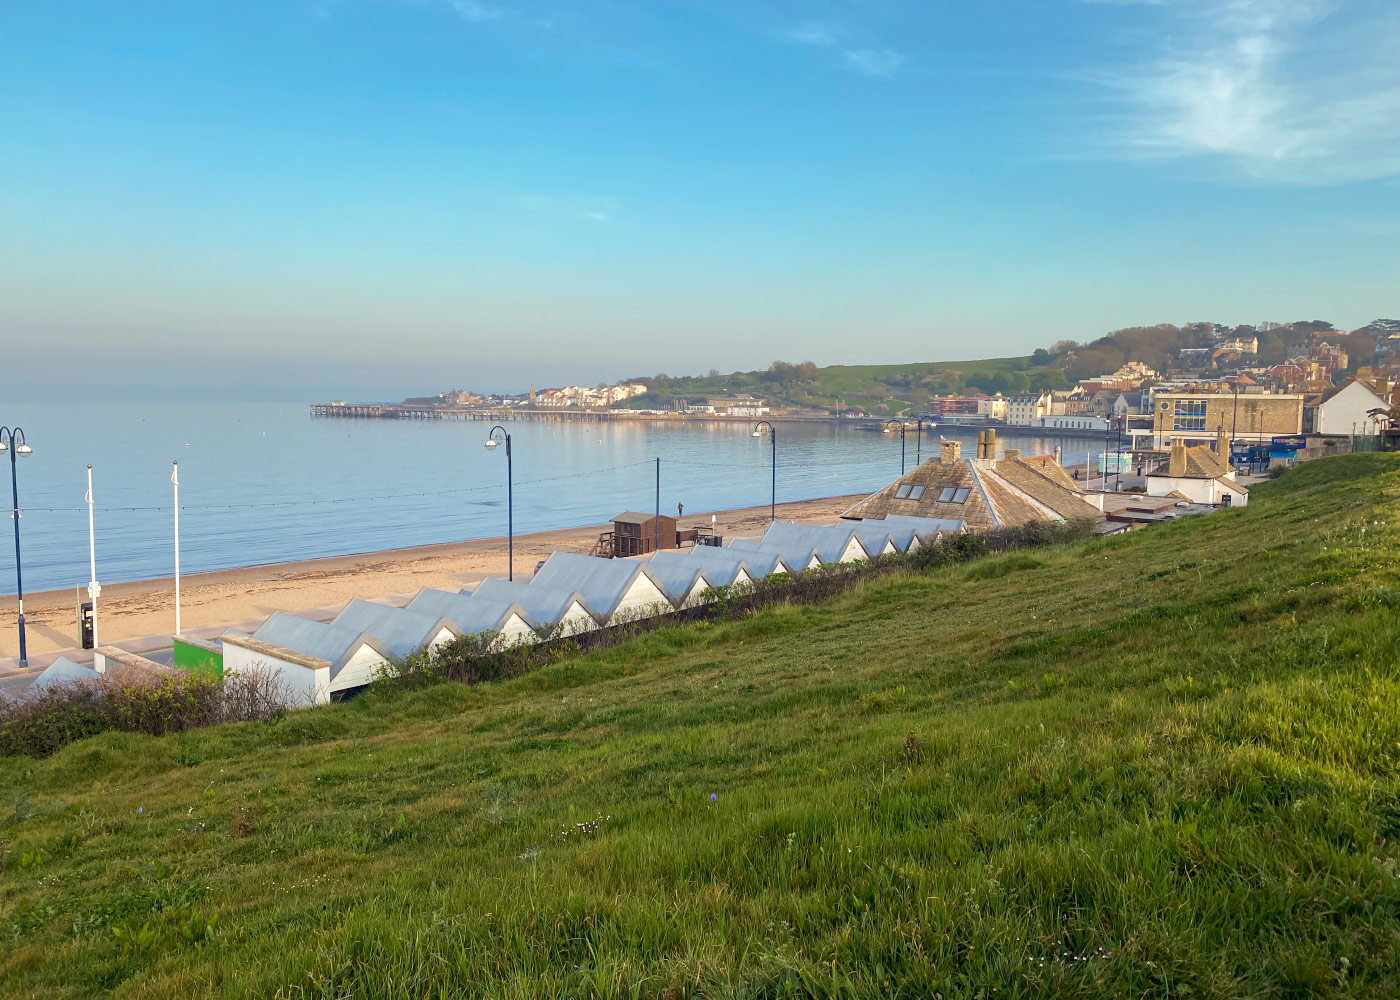 Early Evening at Swanage Seafront